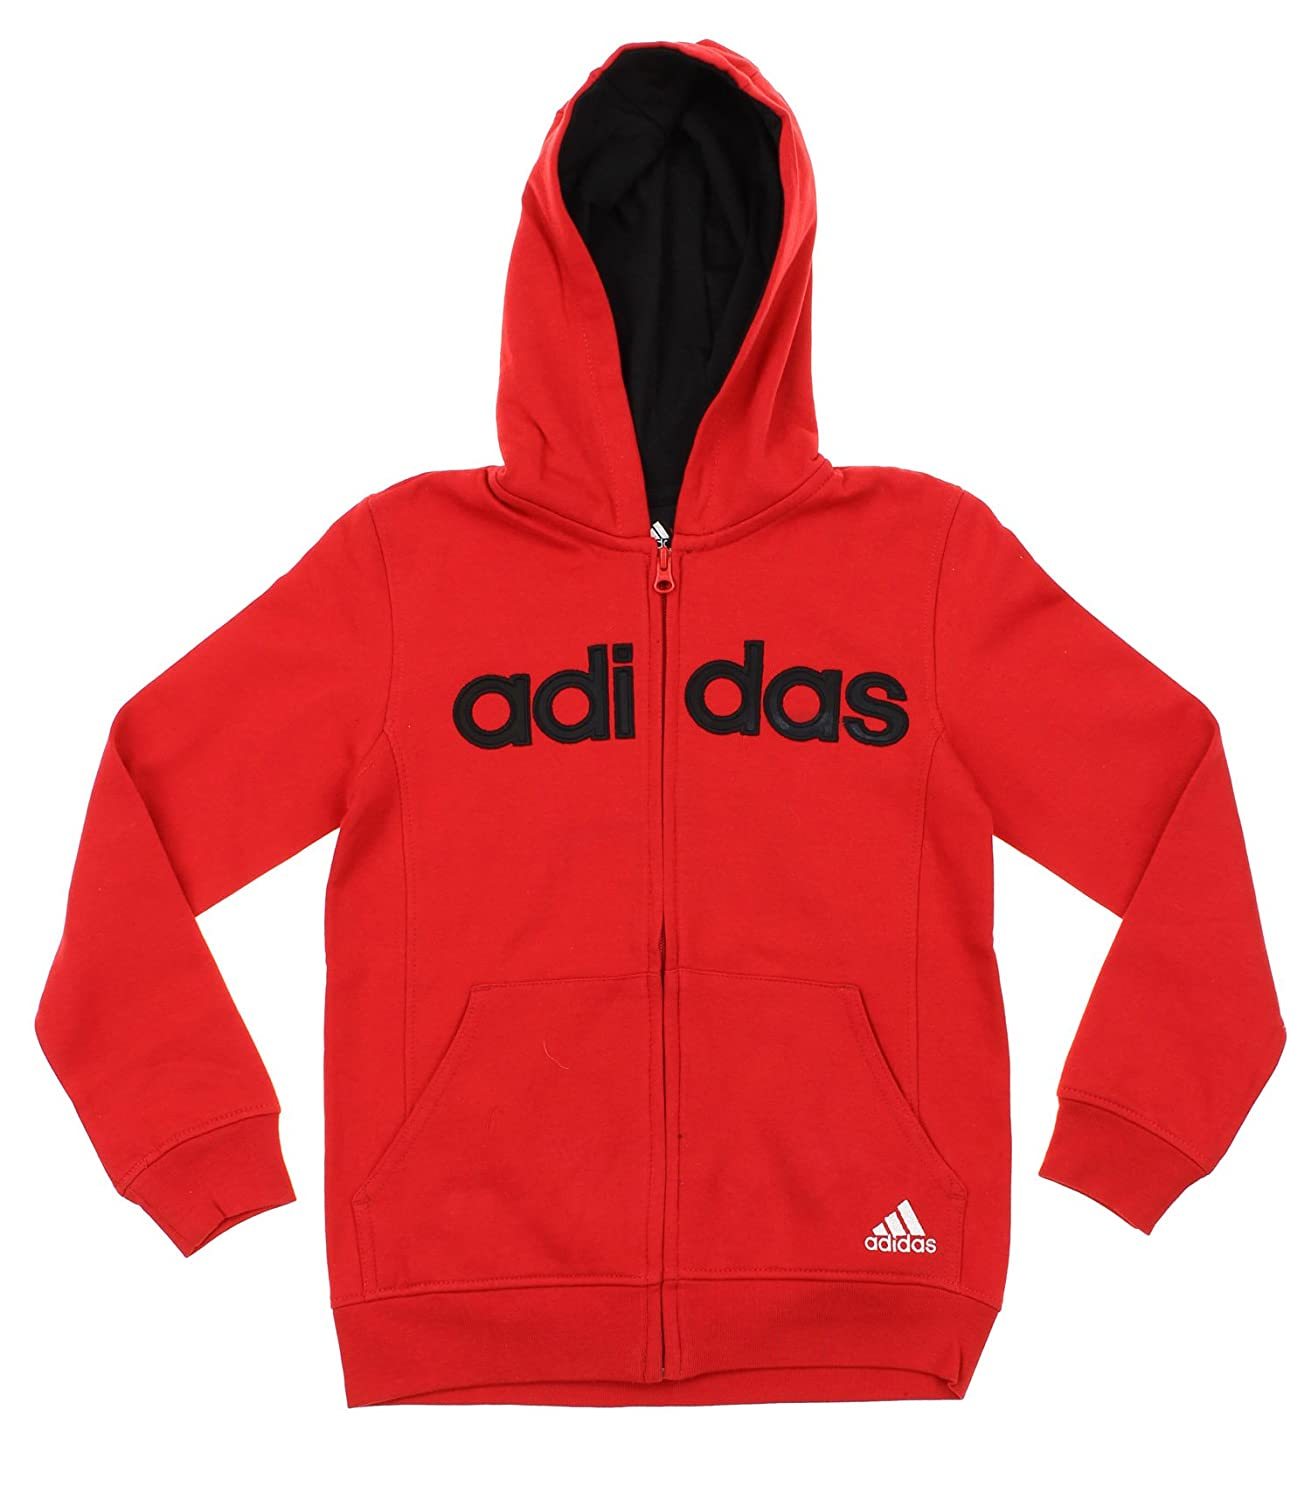 Adidas Big Boys Youth Uptempo Full Zip Fleece Hoodie, Color Options